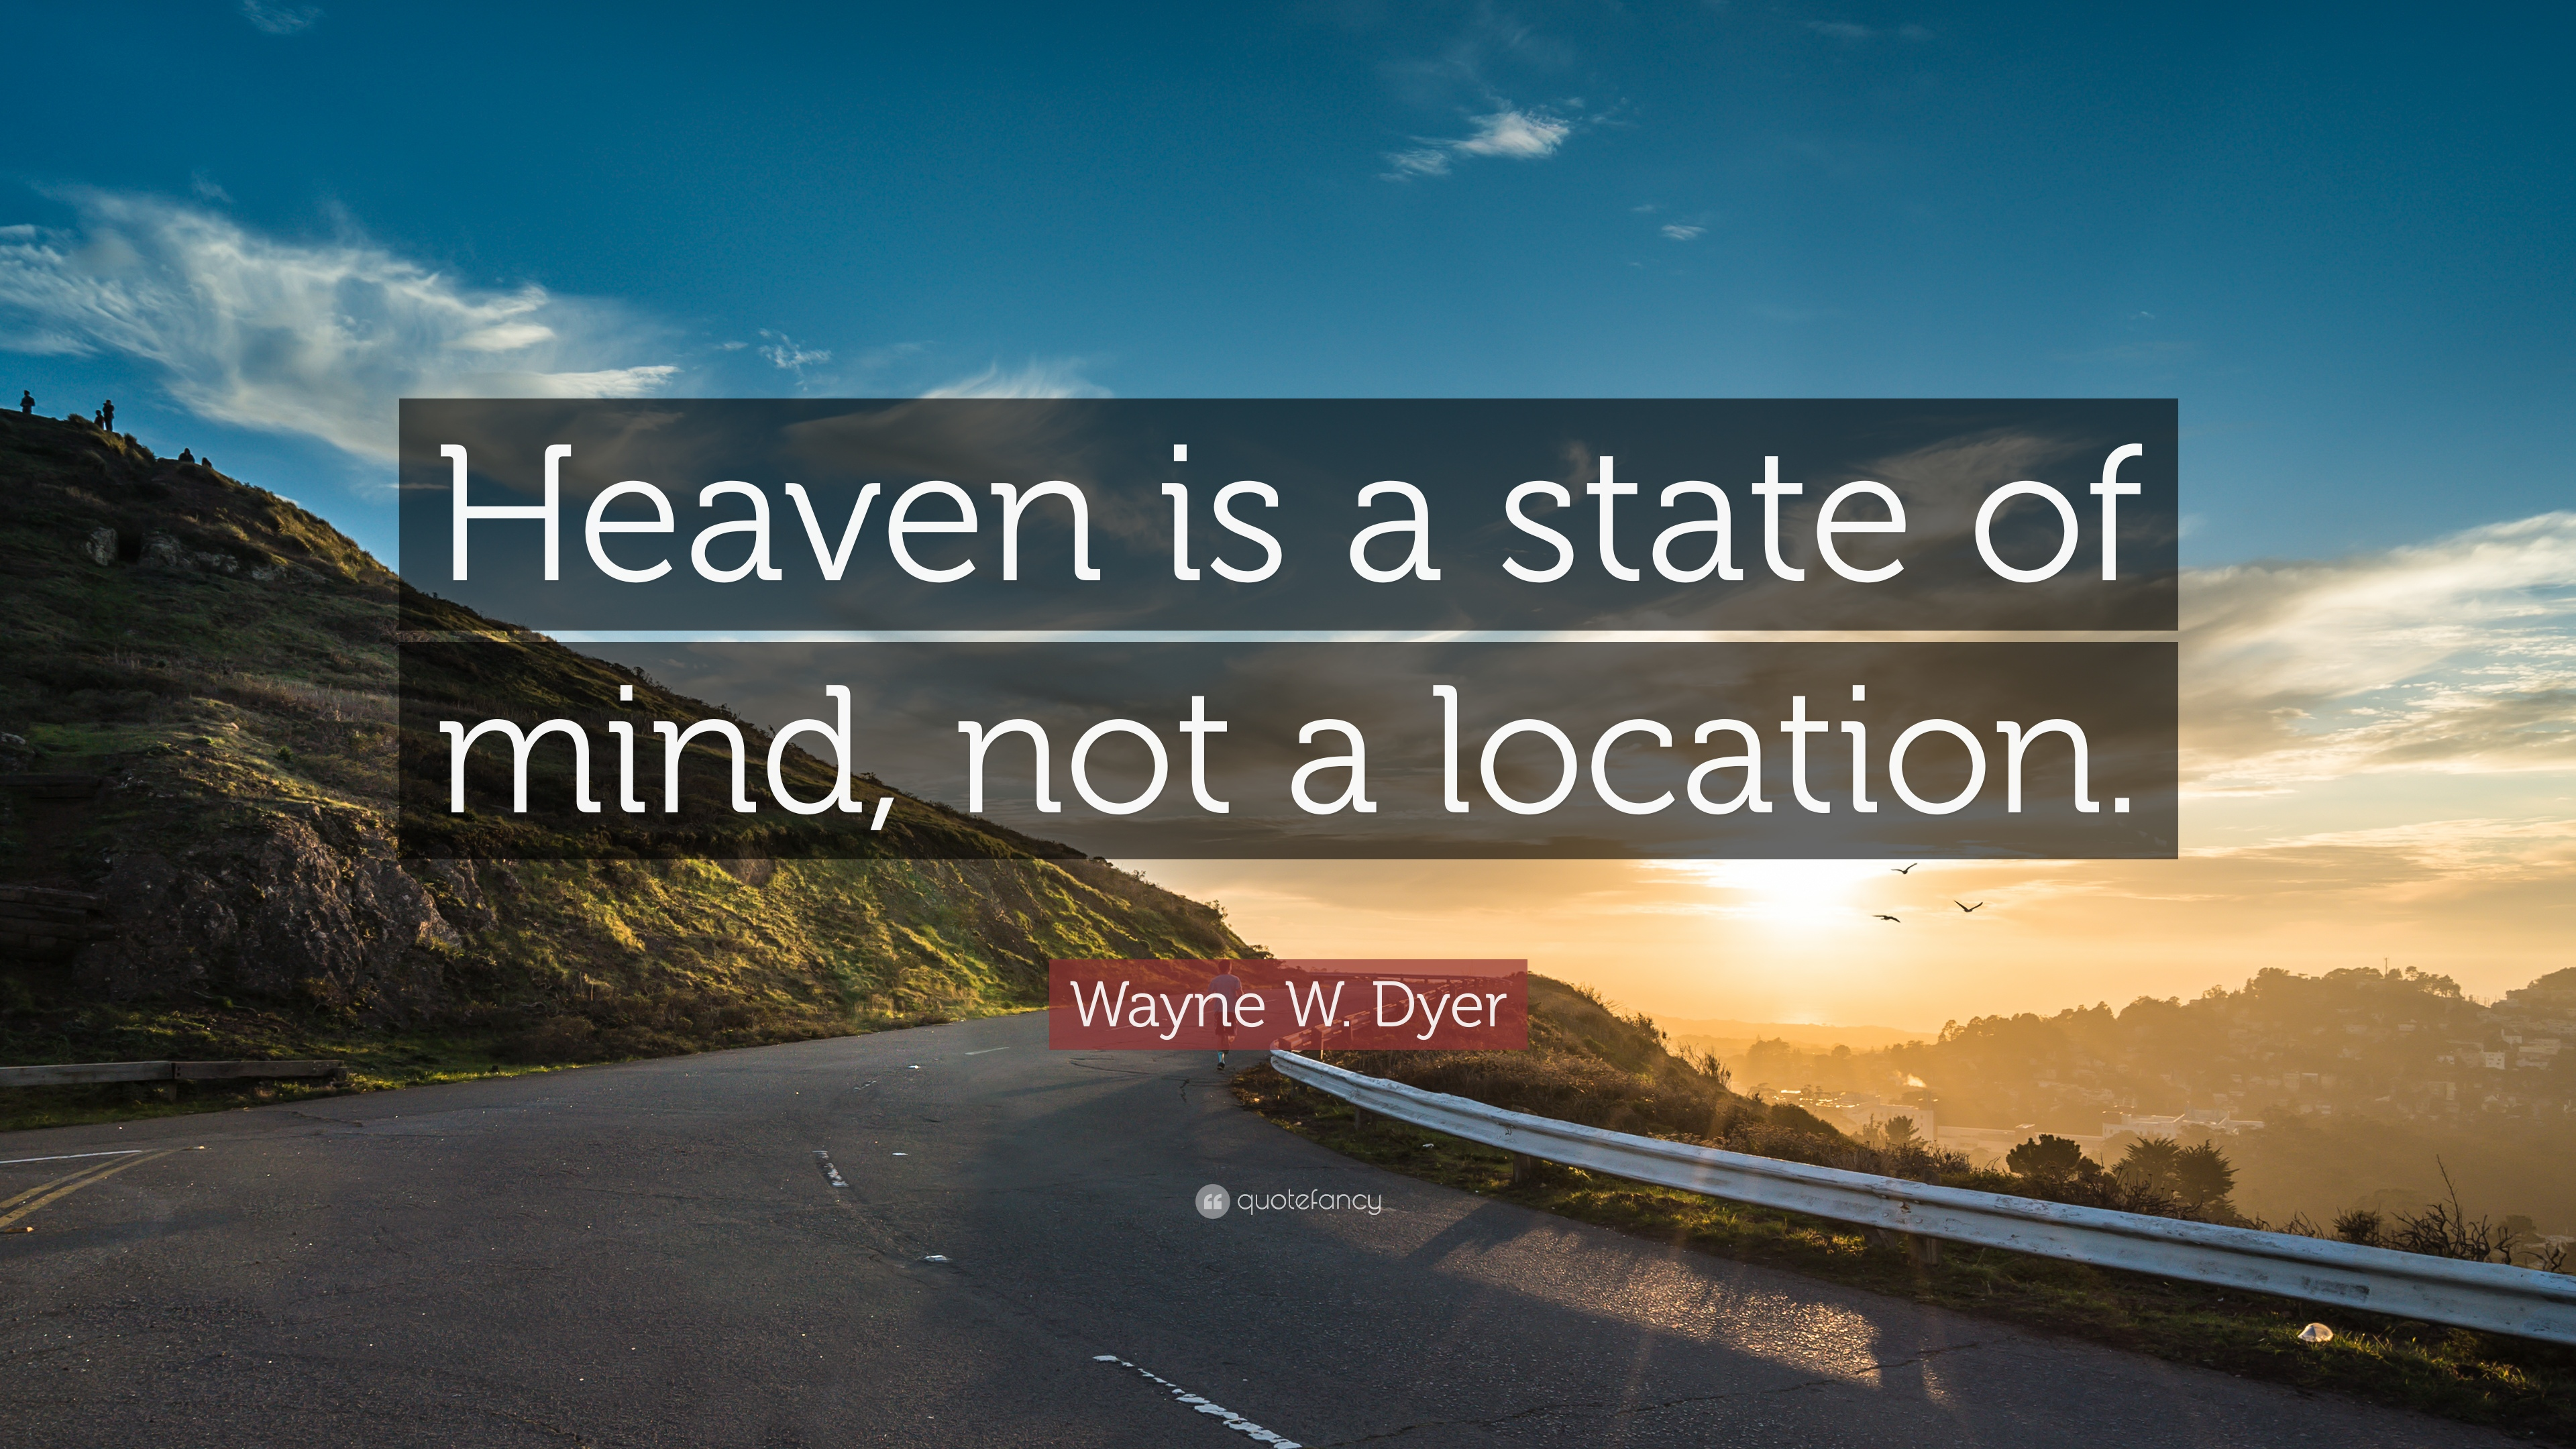 Wayne W Dyer Quote Heaven Is A State Of Mind Not A